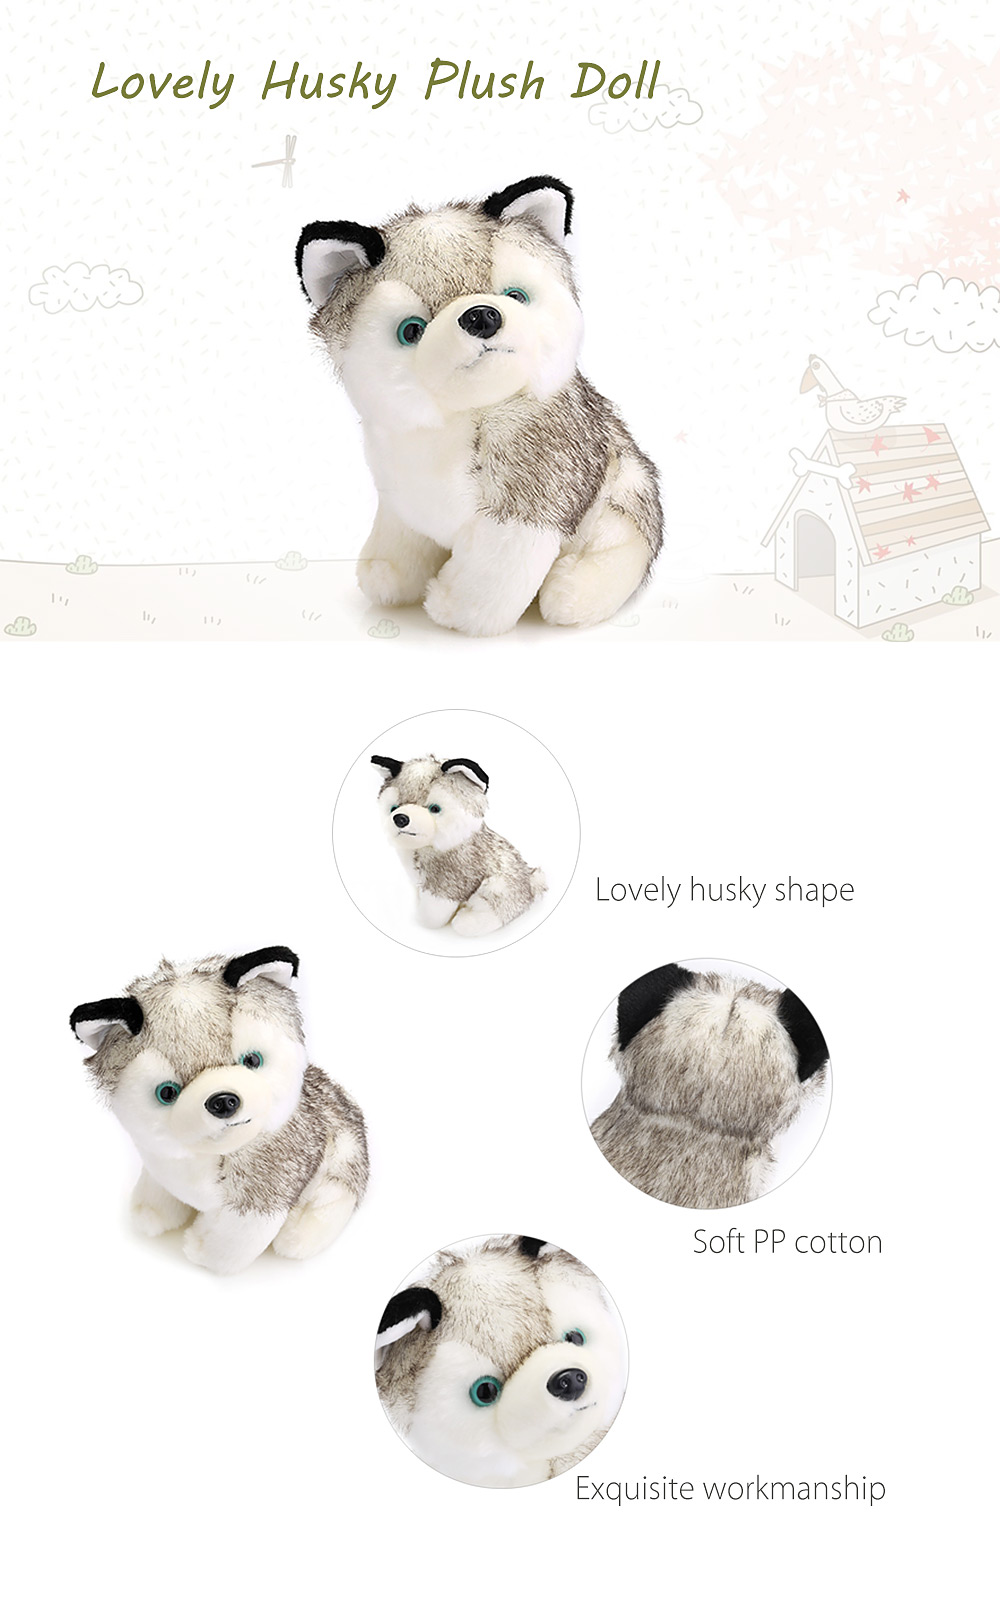 250mm Baby Stuffed Cute Husky Plush Doll Toy Birthday Christmas Gift